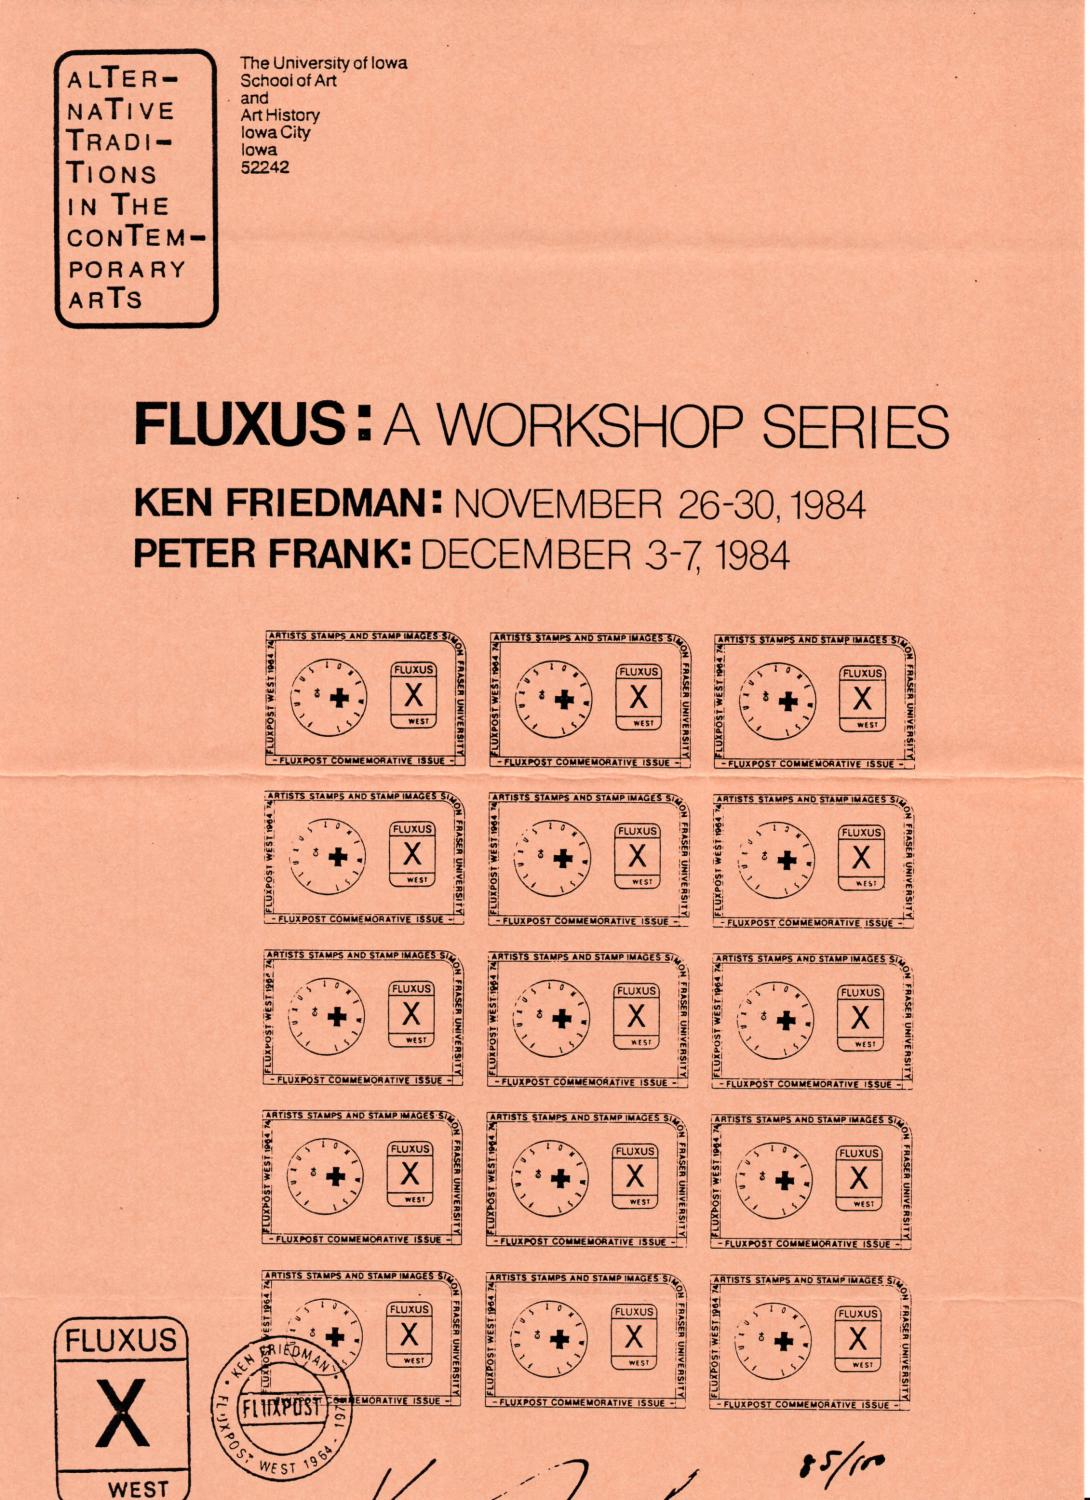 Alternative Traditions In The Contemporary Arts. FLUXUS: Friedman, Ken und